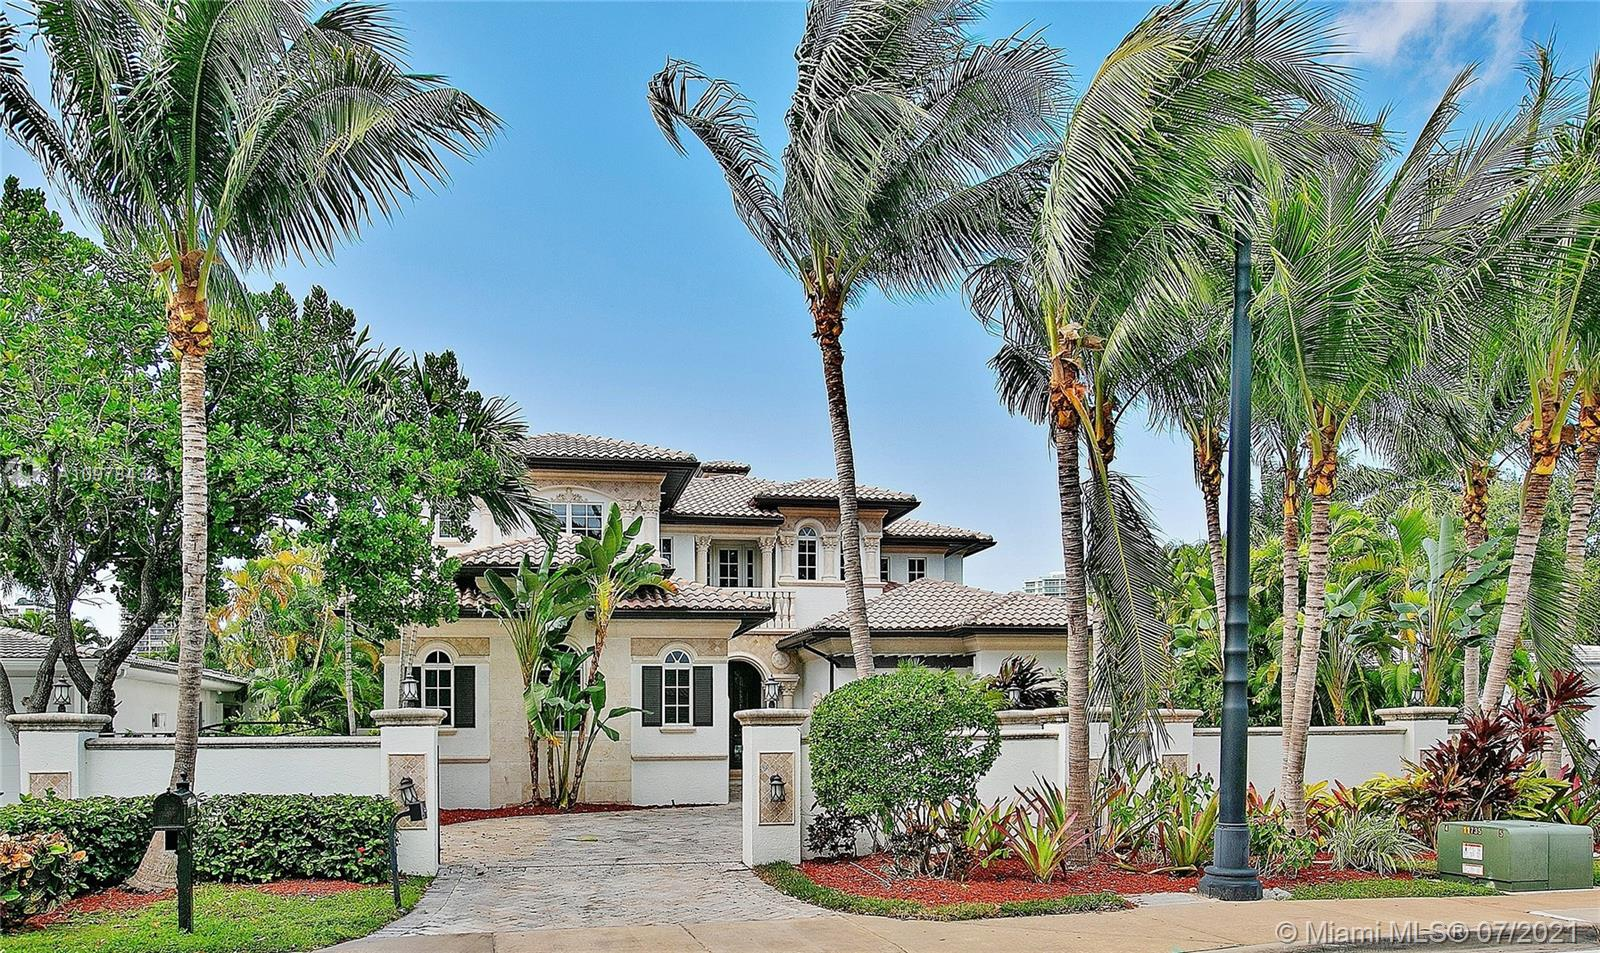 Luxury Home at Golden Beach, Fl. 6 Bedrooms 5 Bathrooms 2 Powder rooms, 2 master bathrooms, 3 car garage, separate guest suite, downstairs office, spacious gated driveway, kosher gas kitchen, indoor/outdoor fireplaces, waterfall pool & spa, summer kitchen, upstairs loft with bar/midnight kitchen, built-in stereo system, elevator, vaulted ceilings.